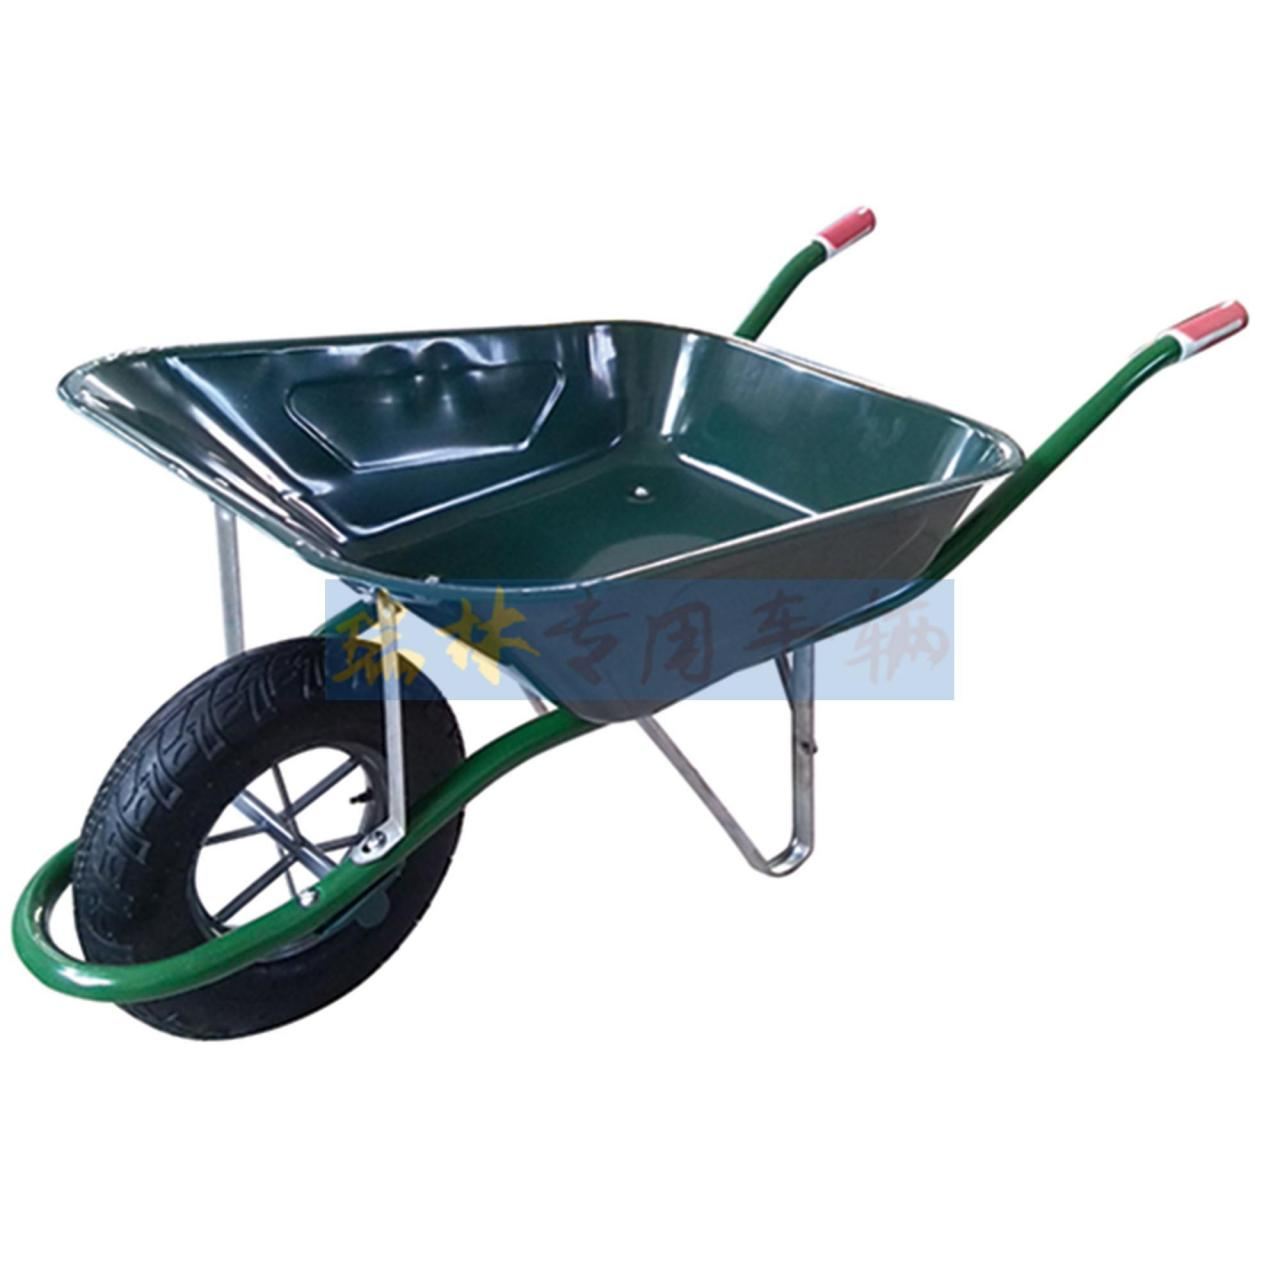 wheelbarrow wb6400M Manufactures